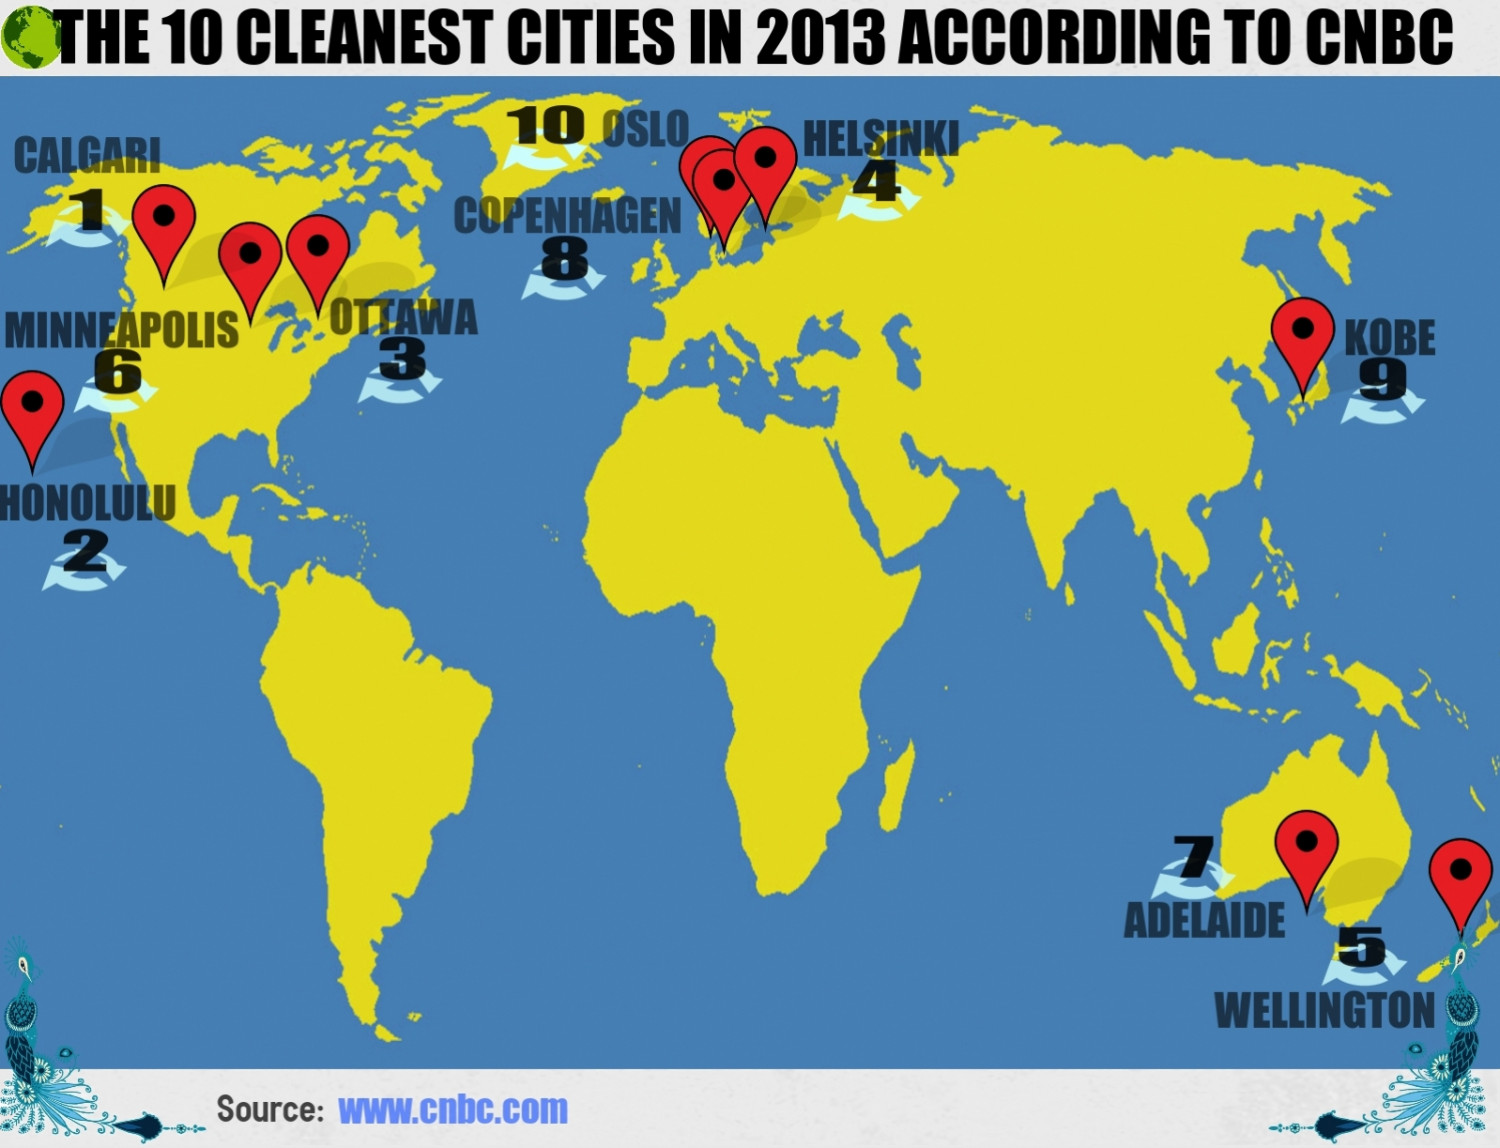 The 10 Cleanest Cities in 2013 According to CNBC Infographic